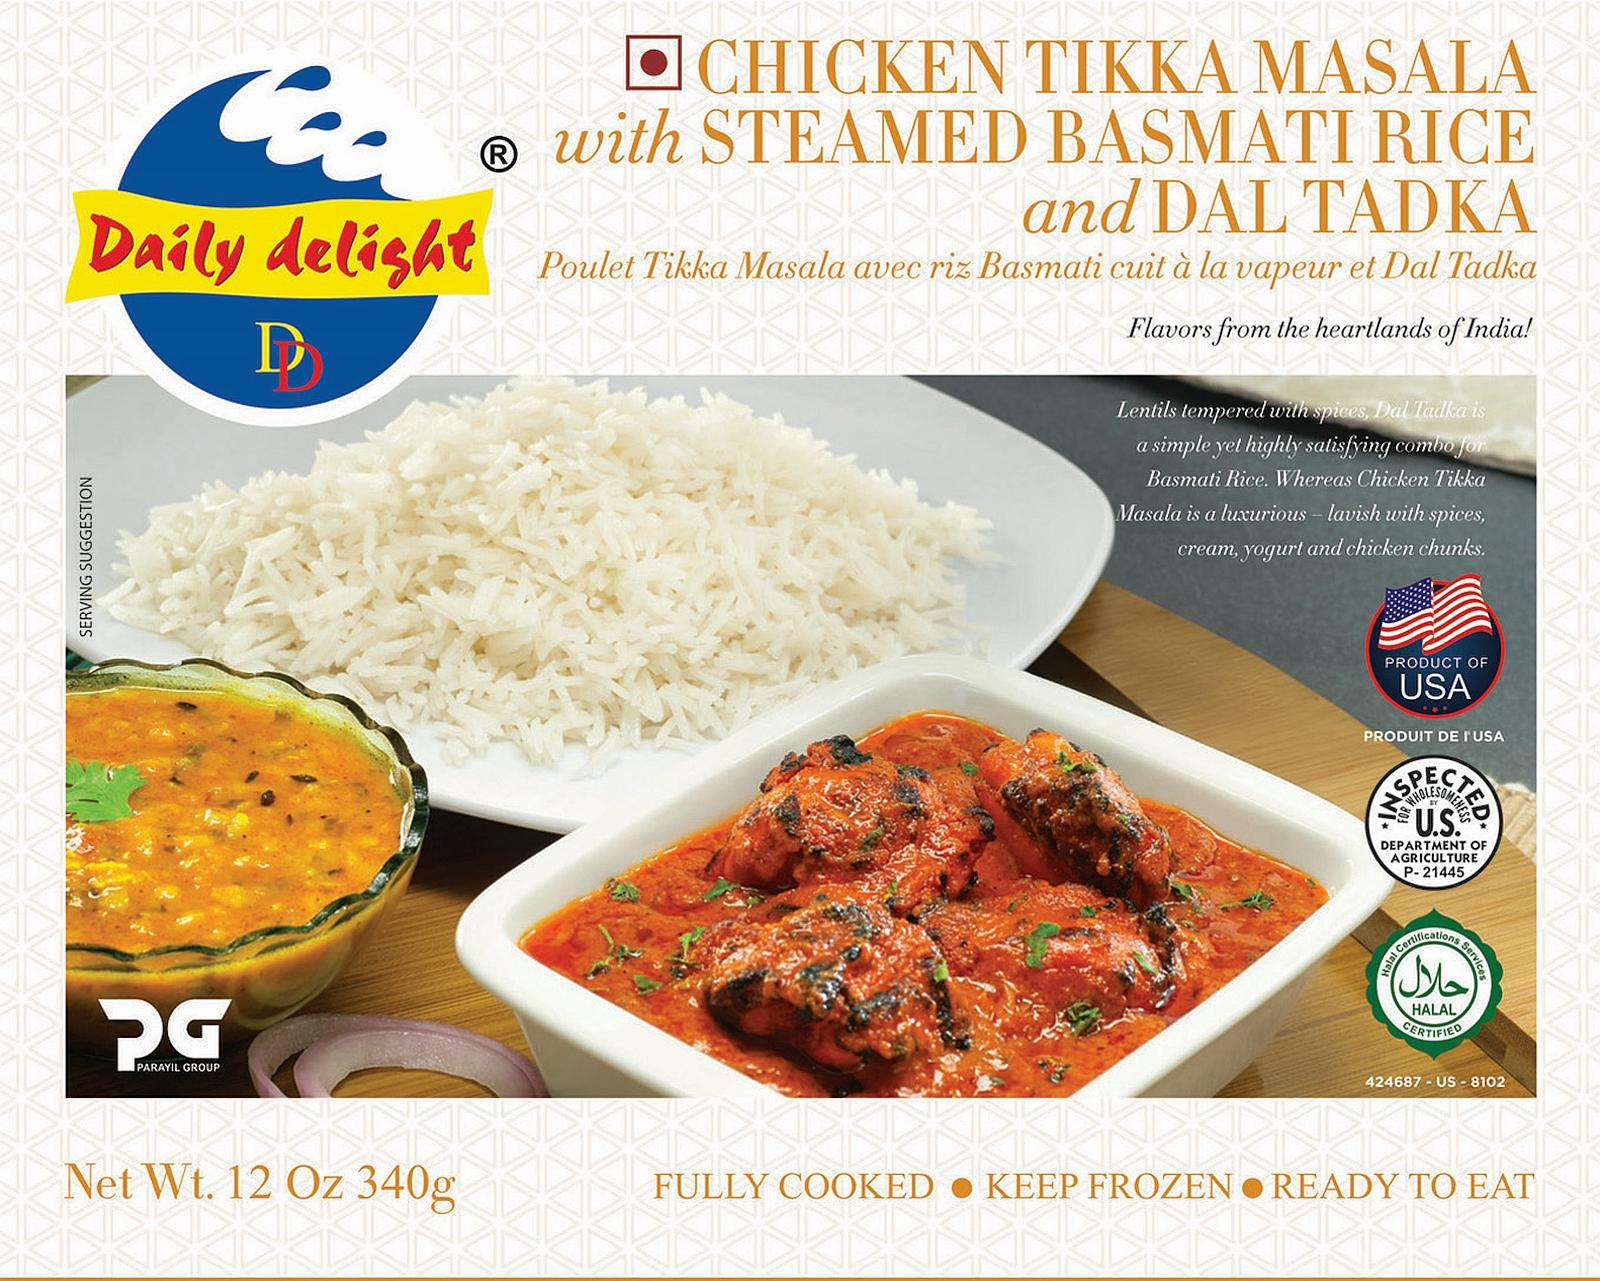 Daily Delight Chicken Tikka Masala with Steamed Basmati Rice and Dal Tadka